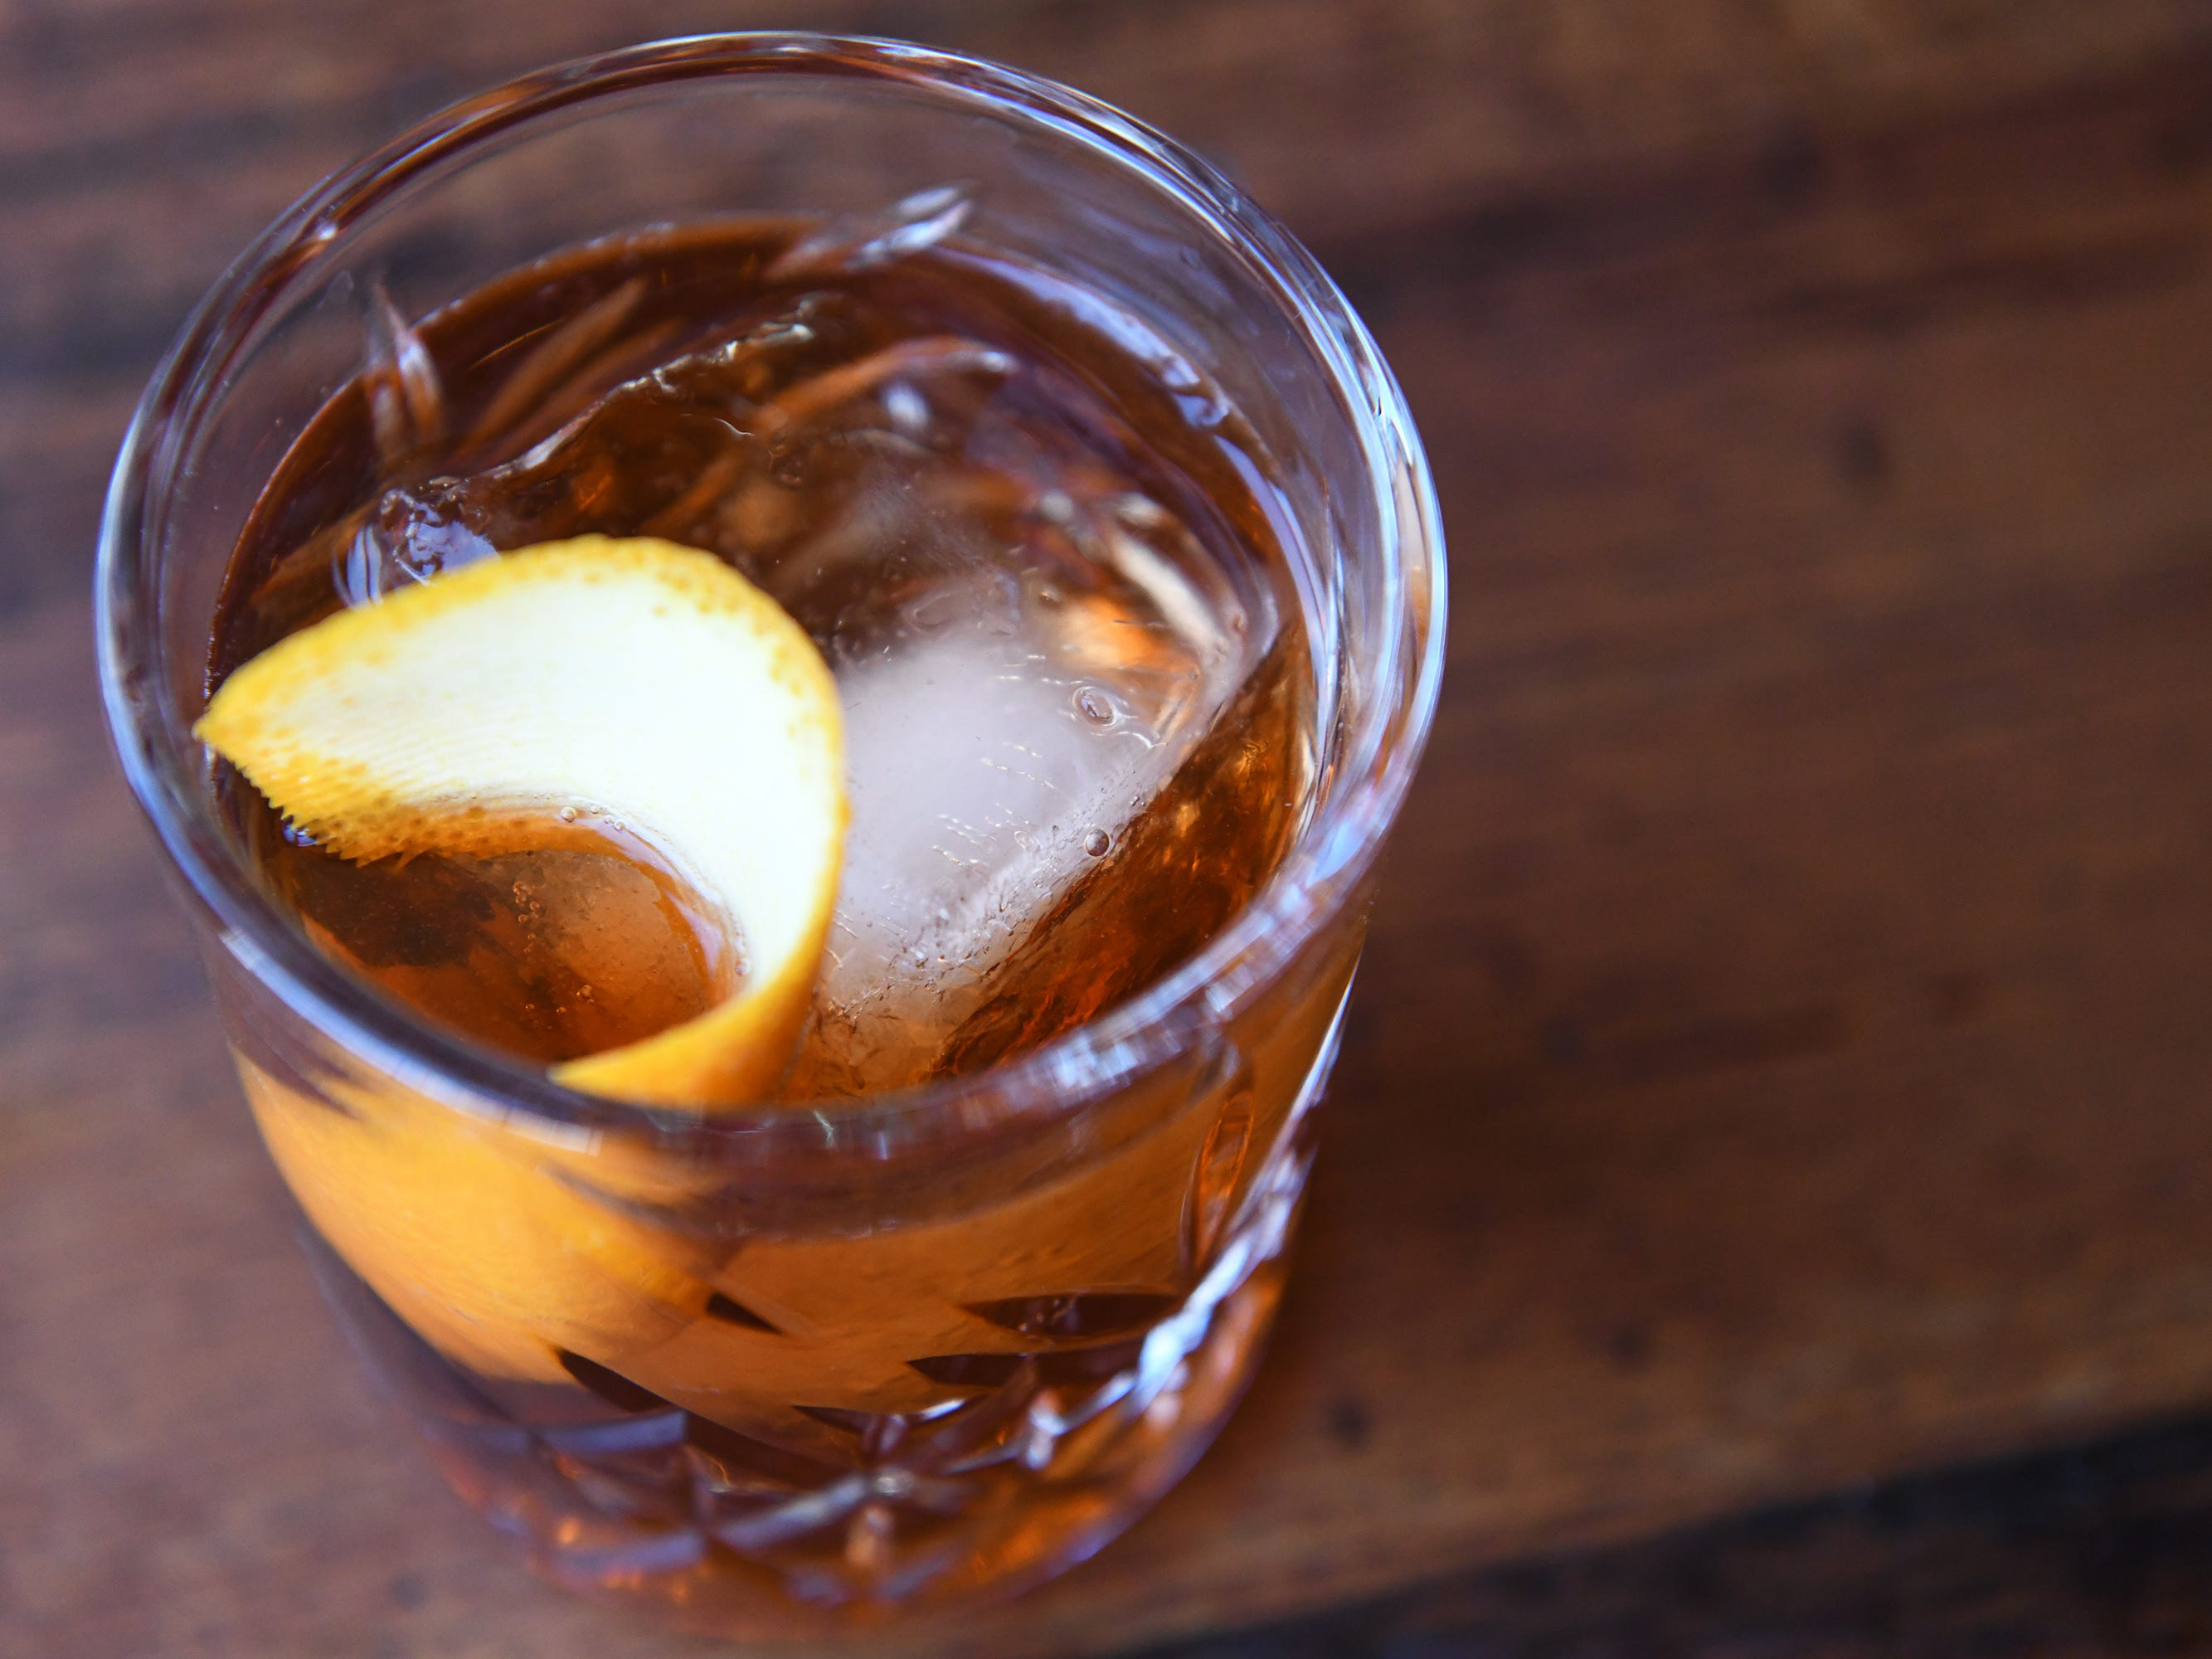 An Oaxaca Old Fashioned is displayed at Central Taco And Tequila in Westmont.